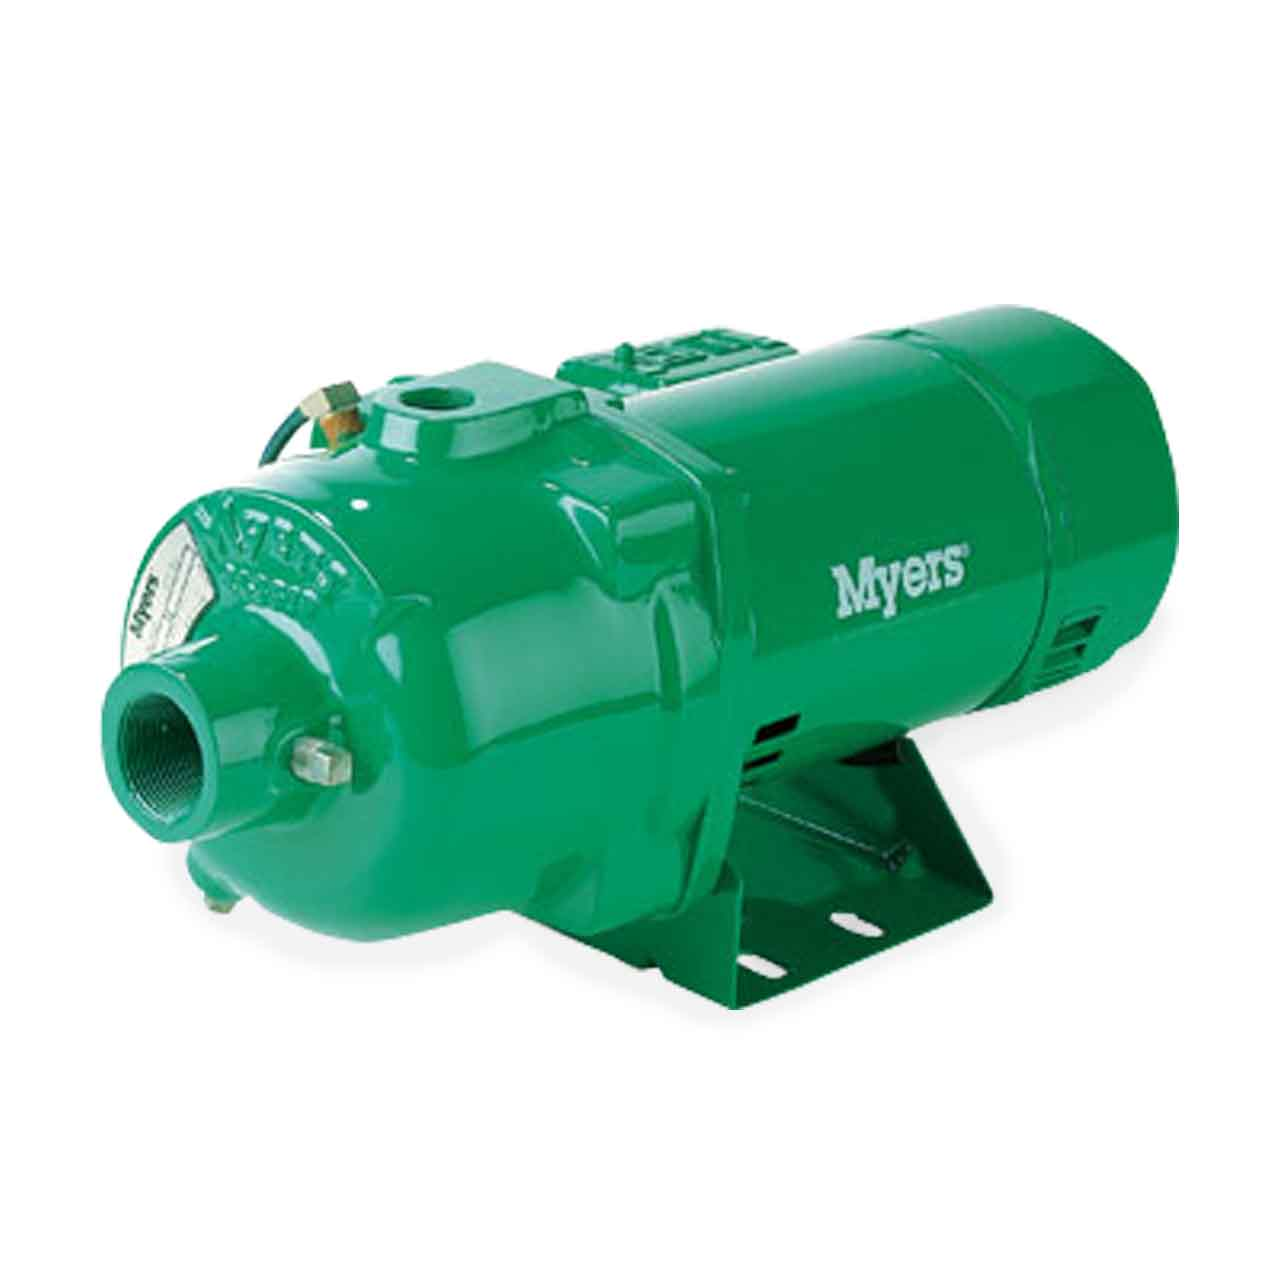 Myers - Myers HR50S Series Convertible Jet Pumps 0.5 HP 115/230V  #MYR24352D900